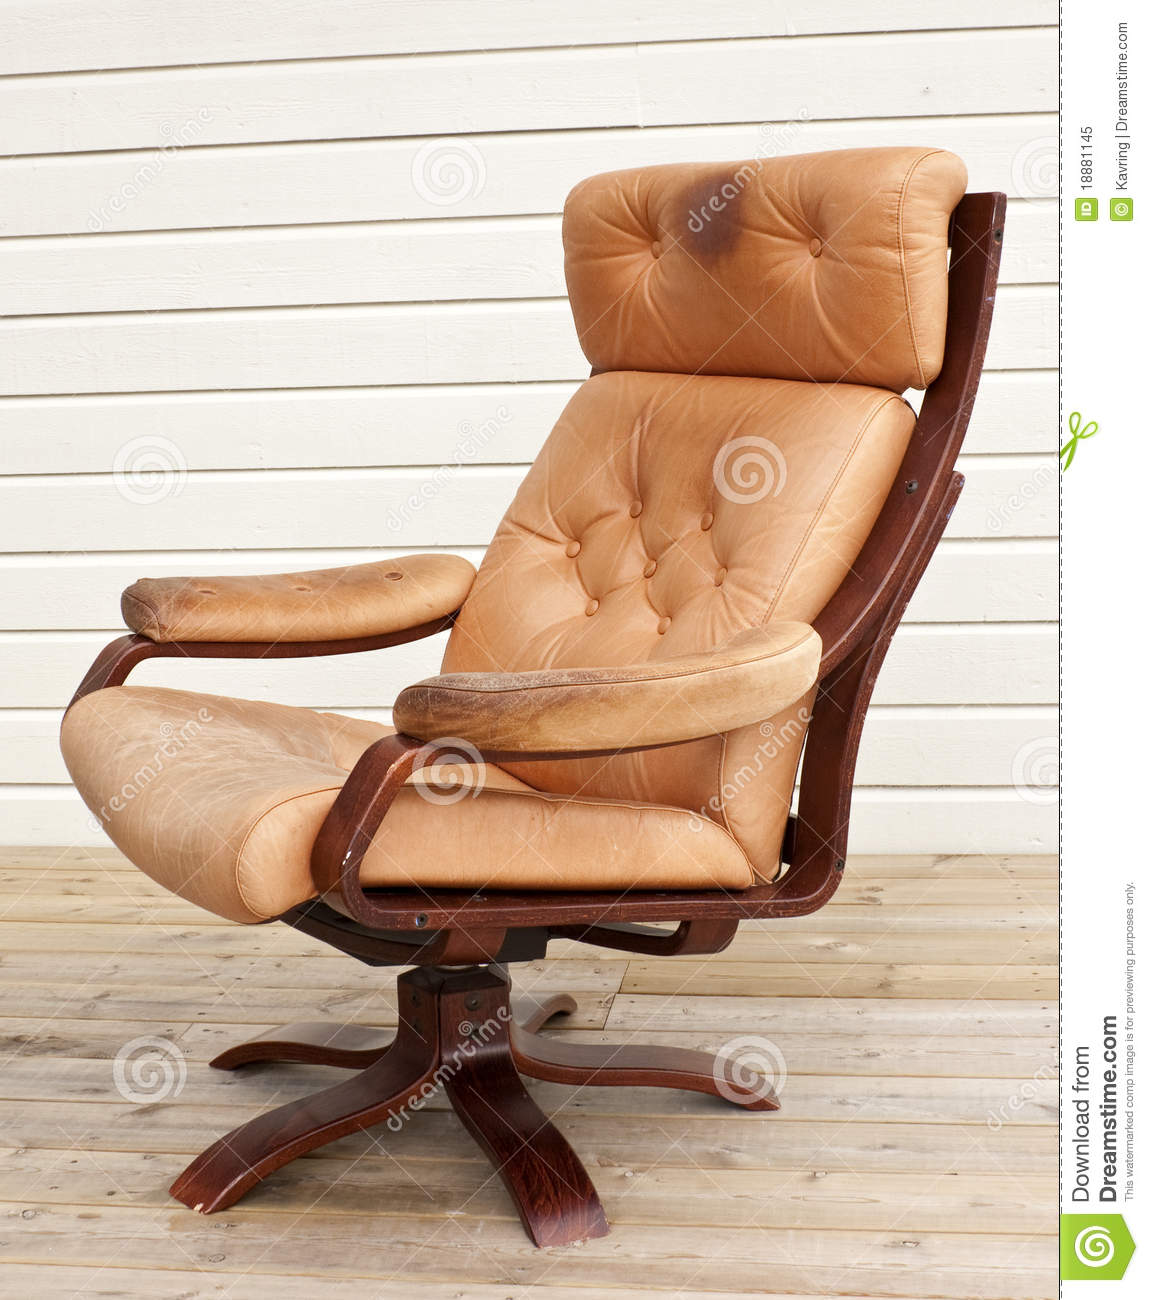 Incredible Old Recliner Stock Image Image Of Flooring Furniture Machost Co Dining Chair Design Ideas Machostcouk